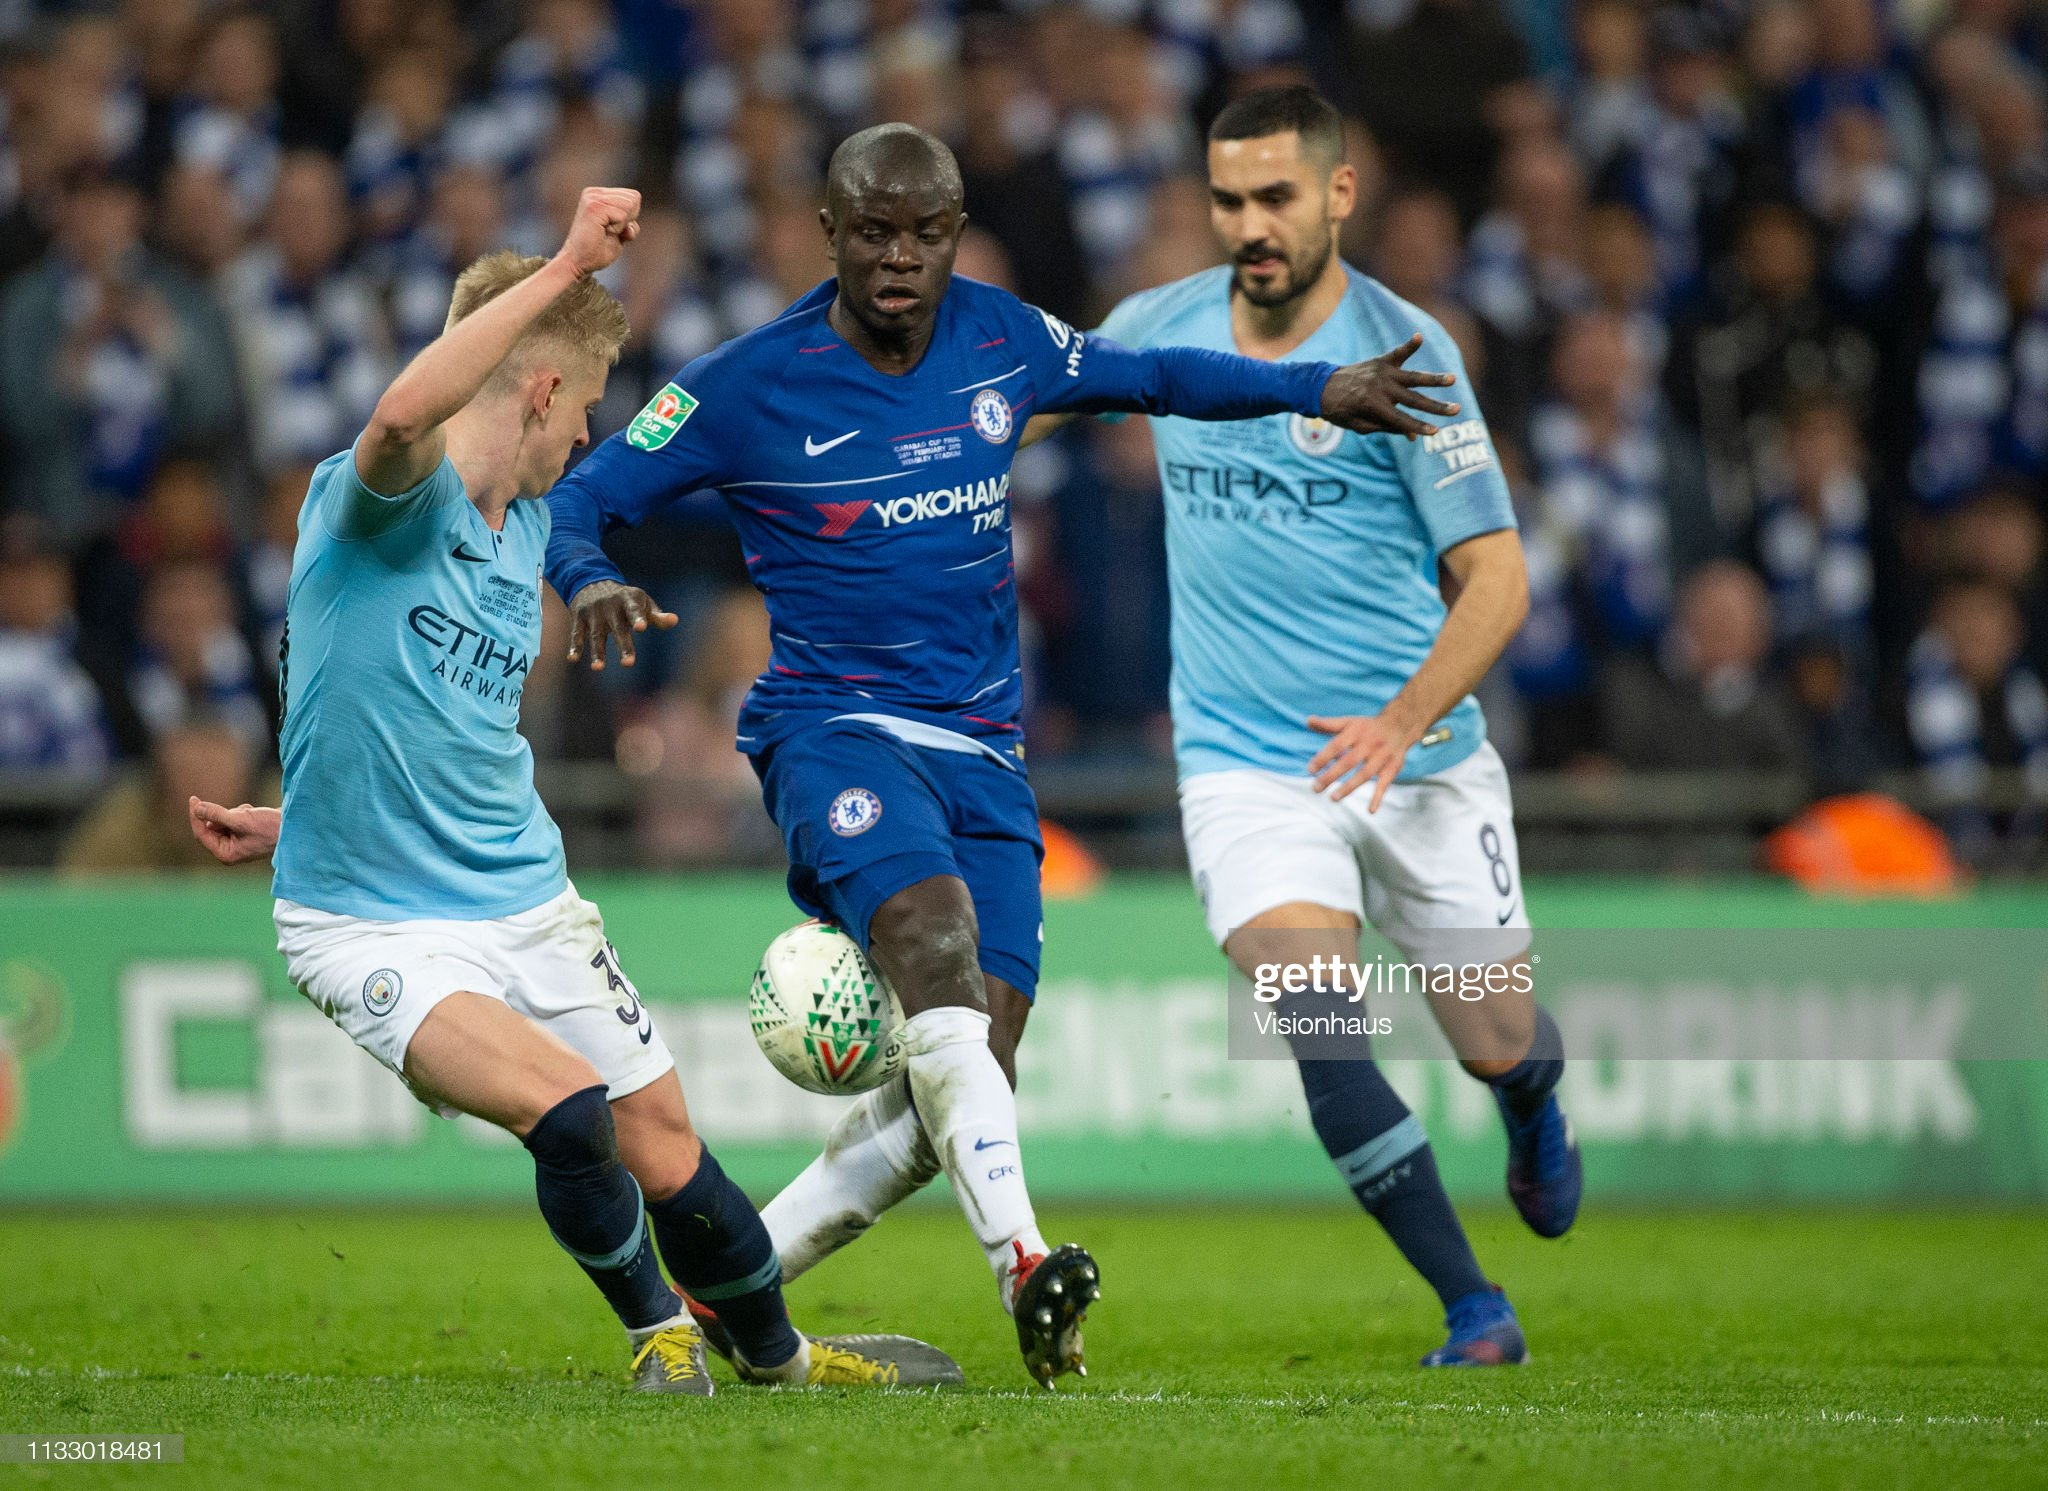 Manchester City v Chelsea preview, prediction and odds